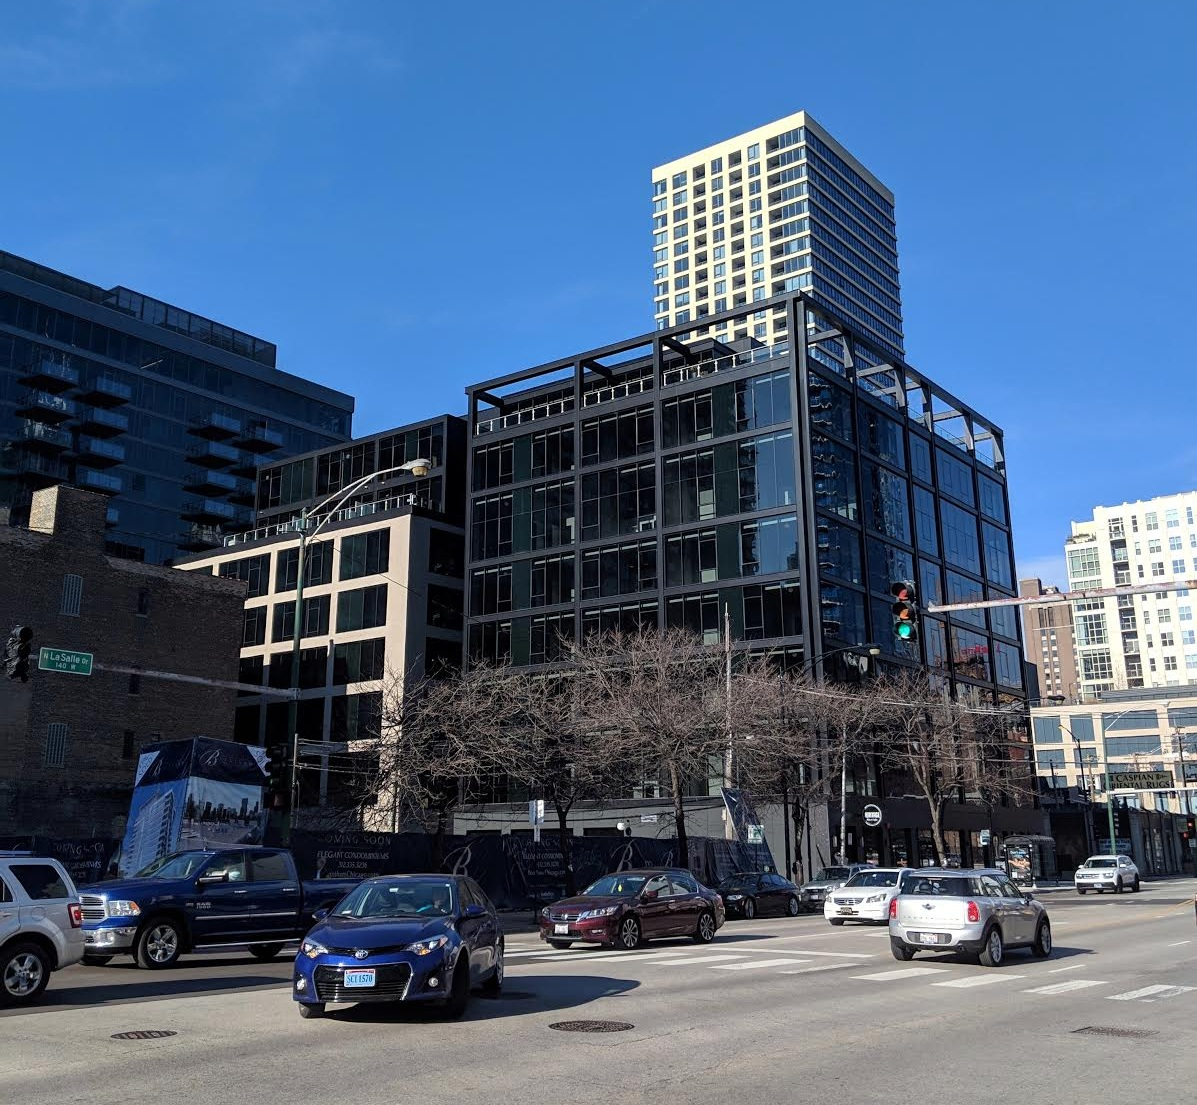 The existing building is in beige on the left and the new building is in black steel and glass on the right. Photo: George Guarino